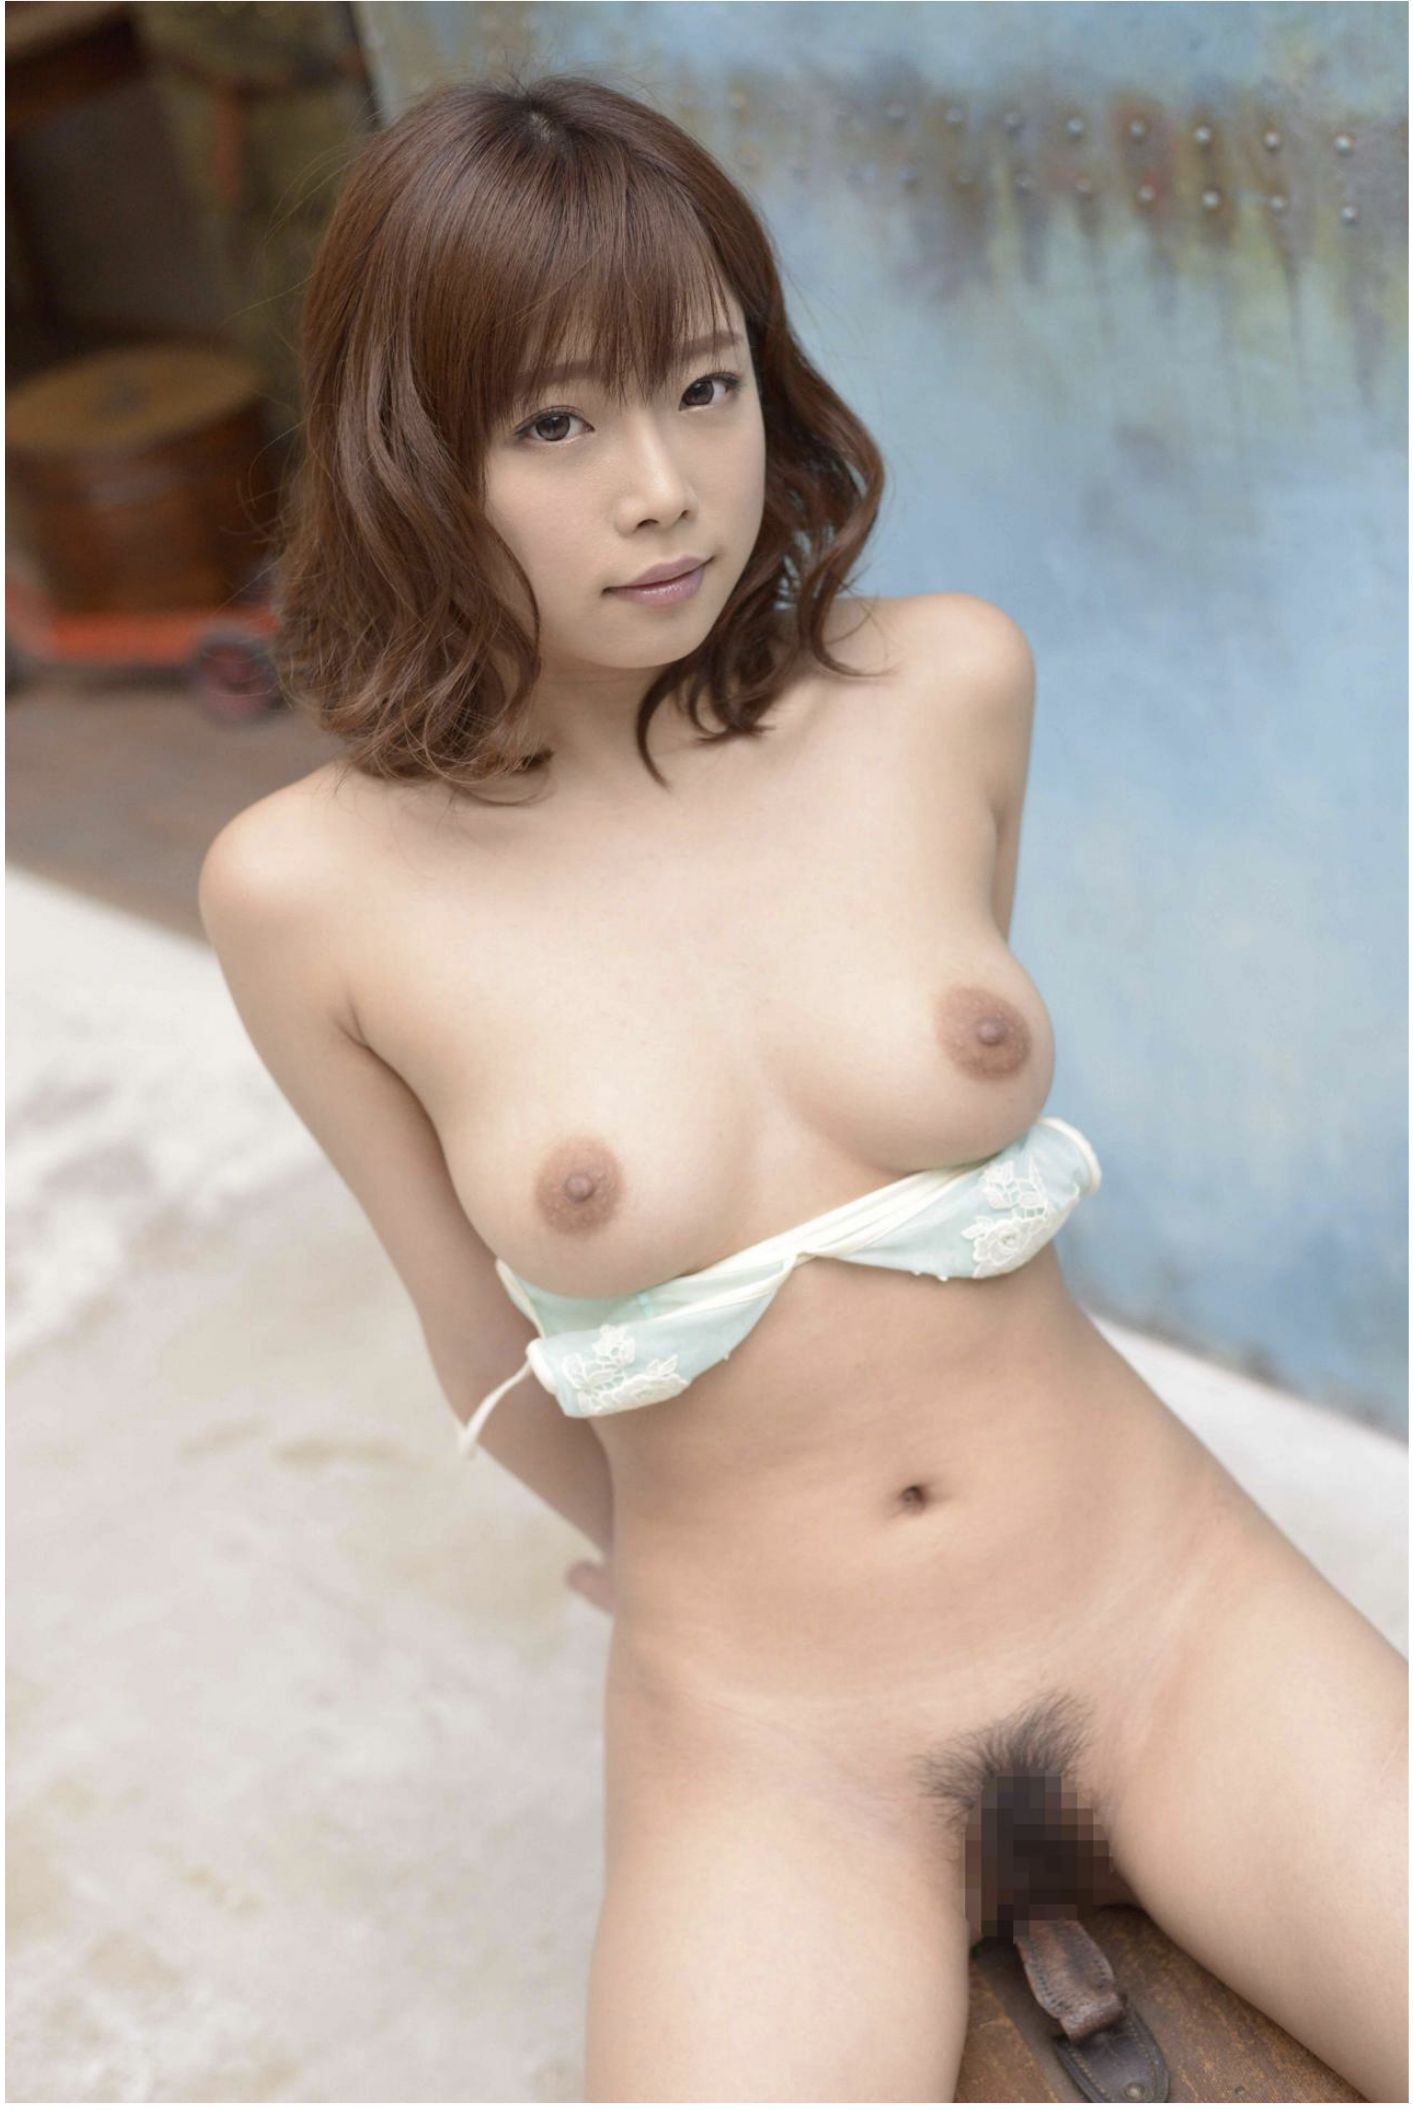 SOFT ON DEMAND GRAVURE COLLECTION 紗倉まな04 photo 115